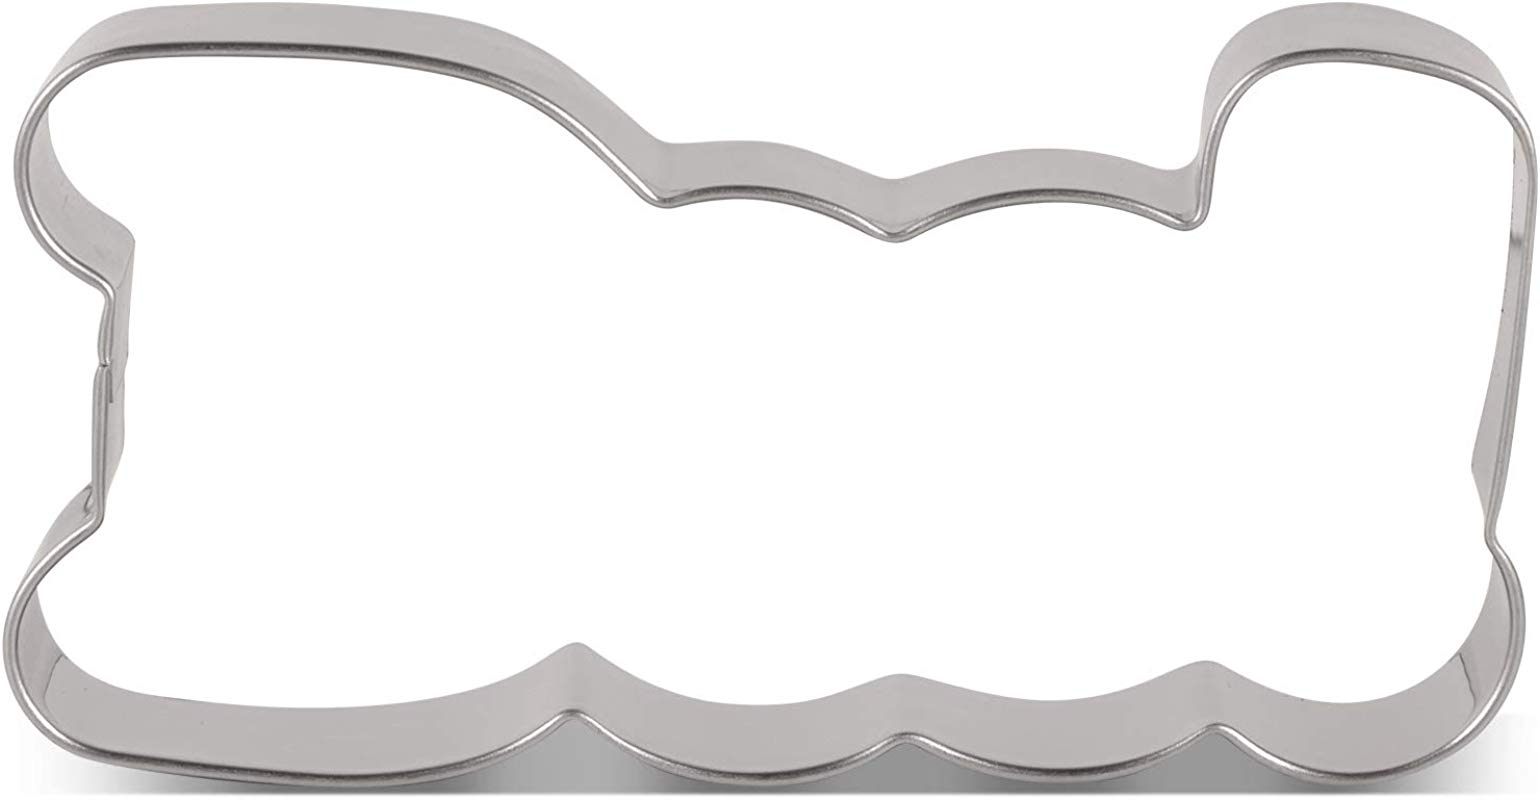 LILIAO BOO Cookie Cutter For Halloween 4 X 2 Inches Stainless Steel